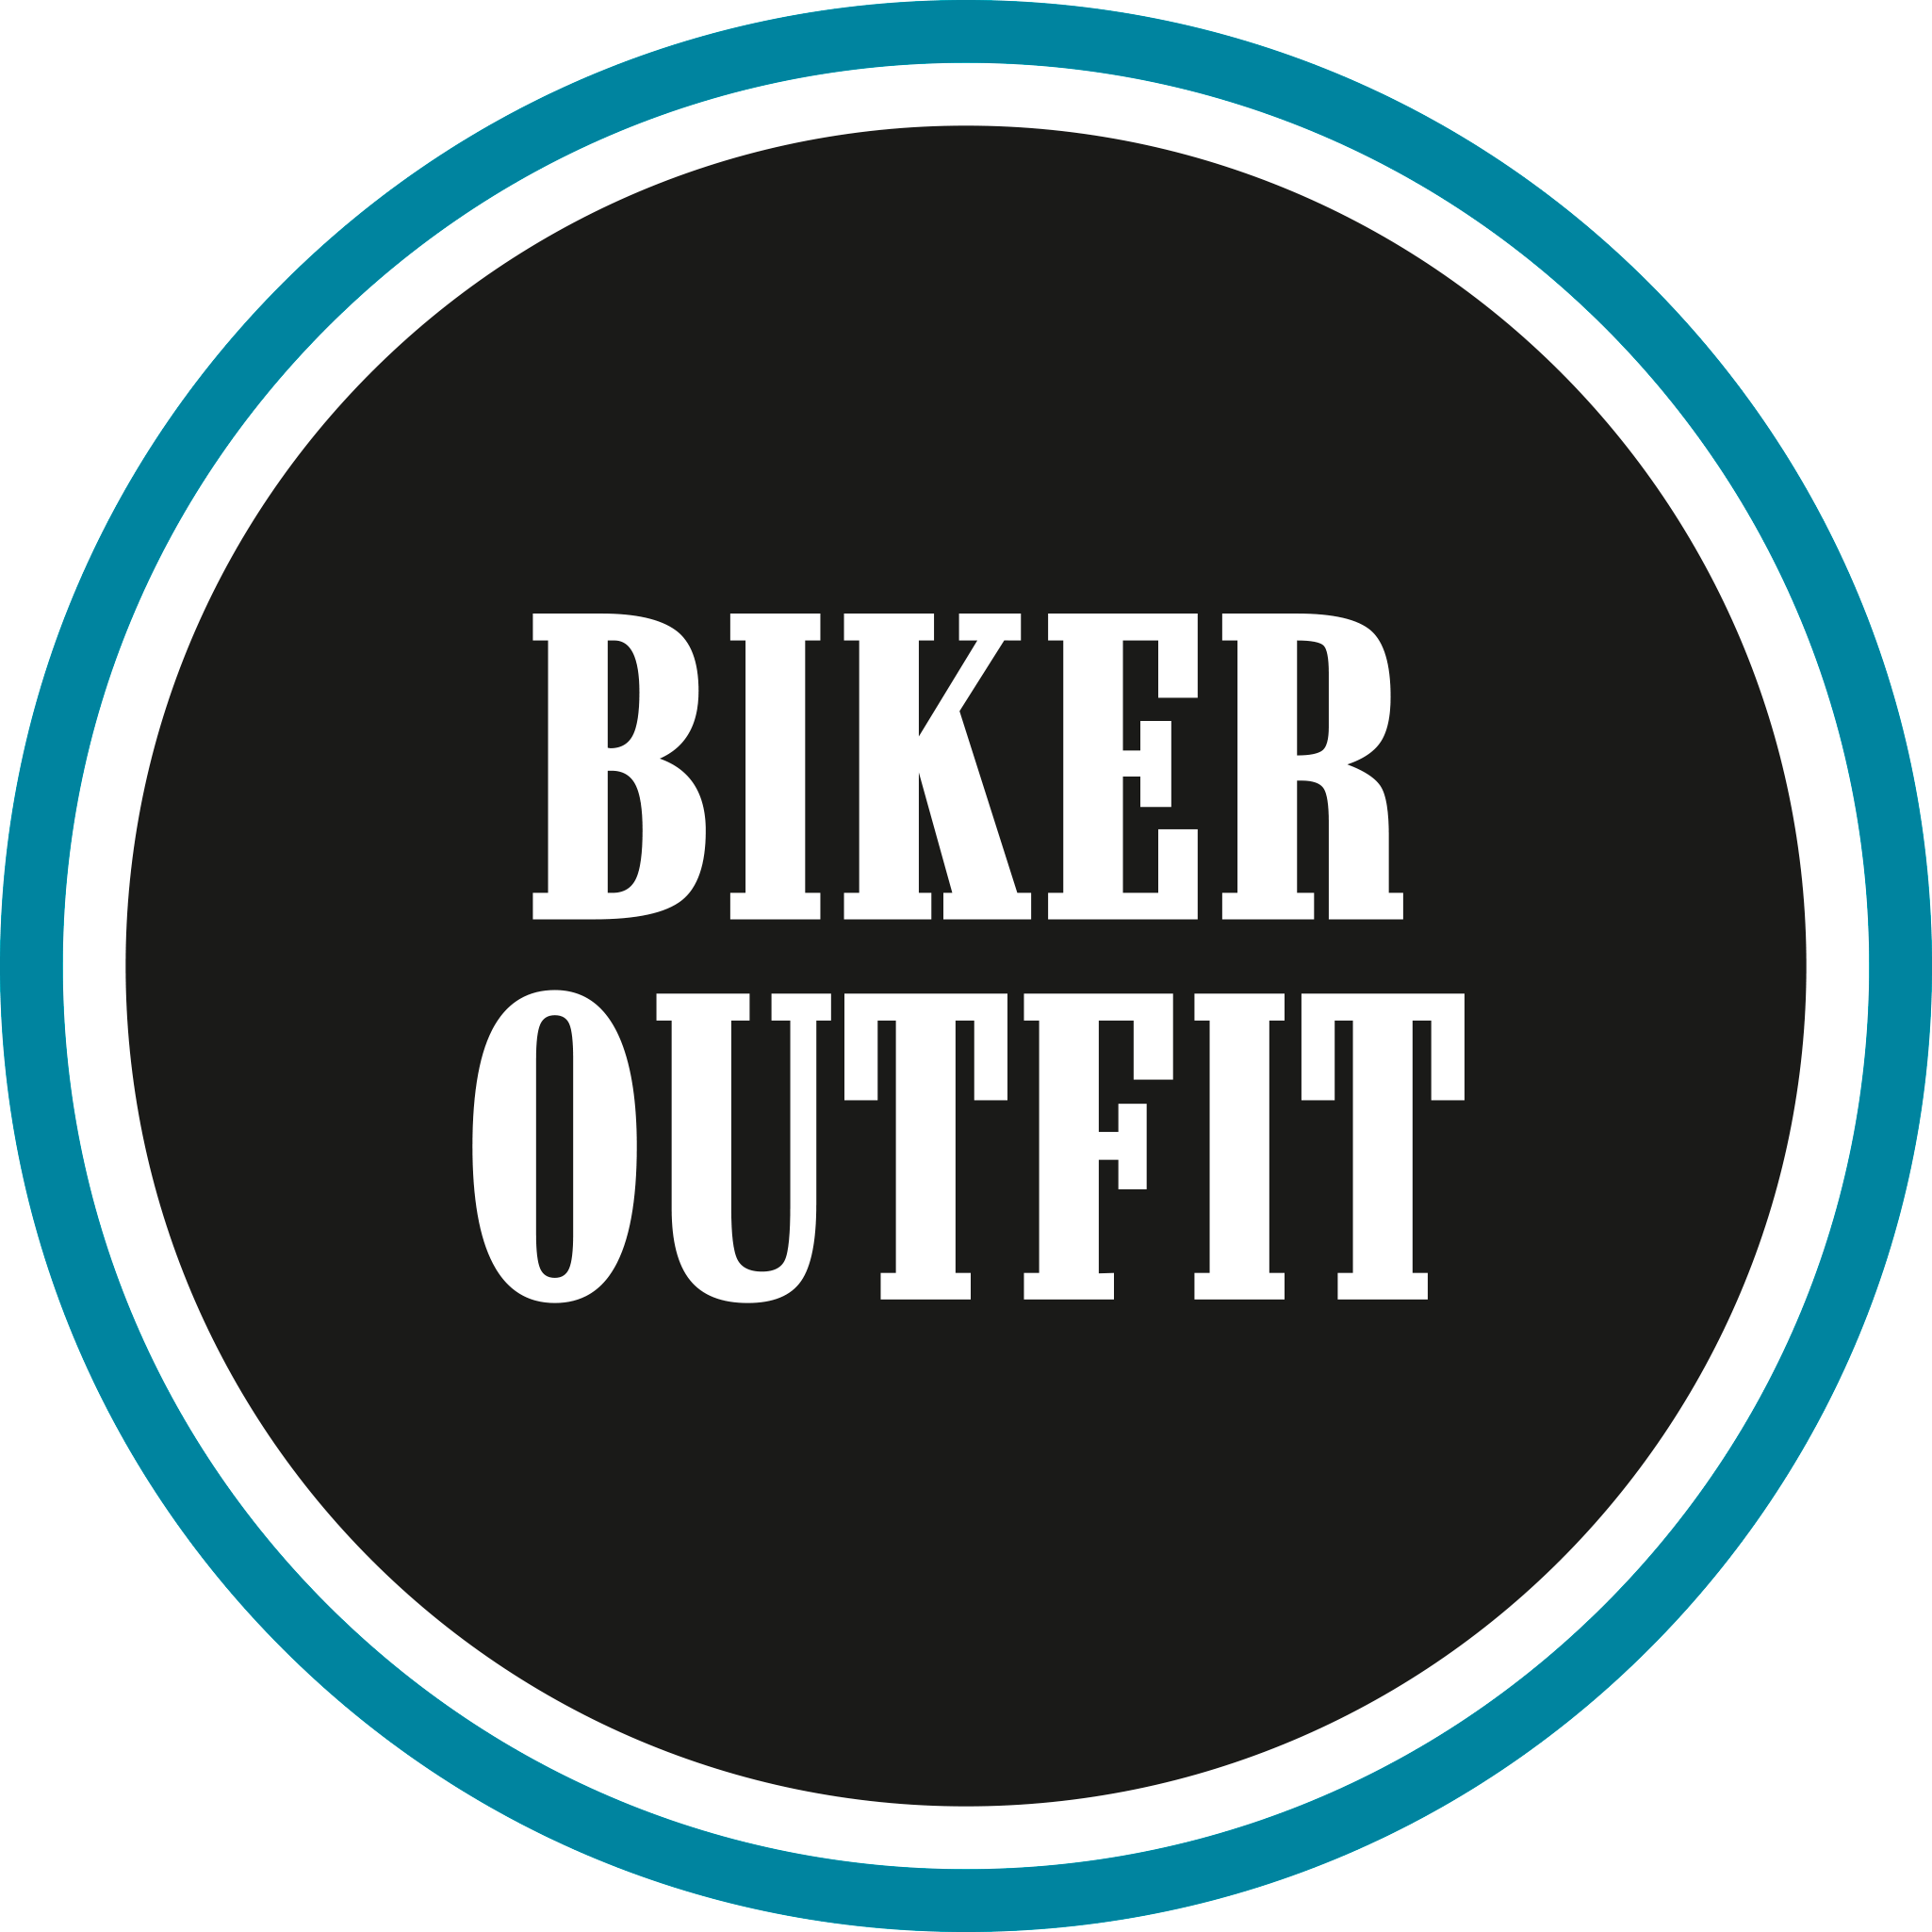 Motorcycle gear - All top brand available